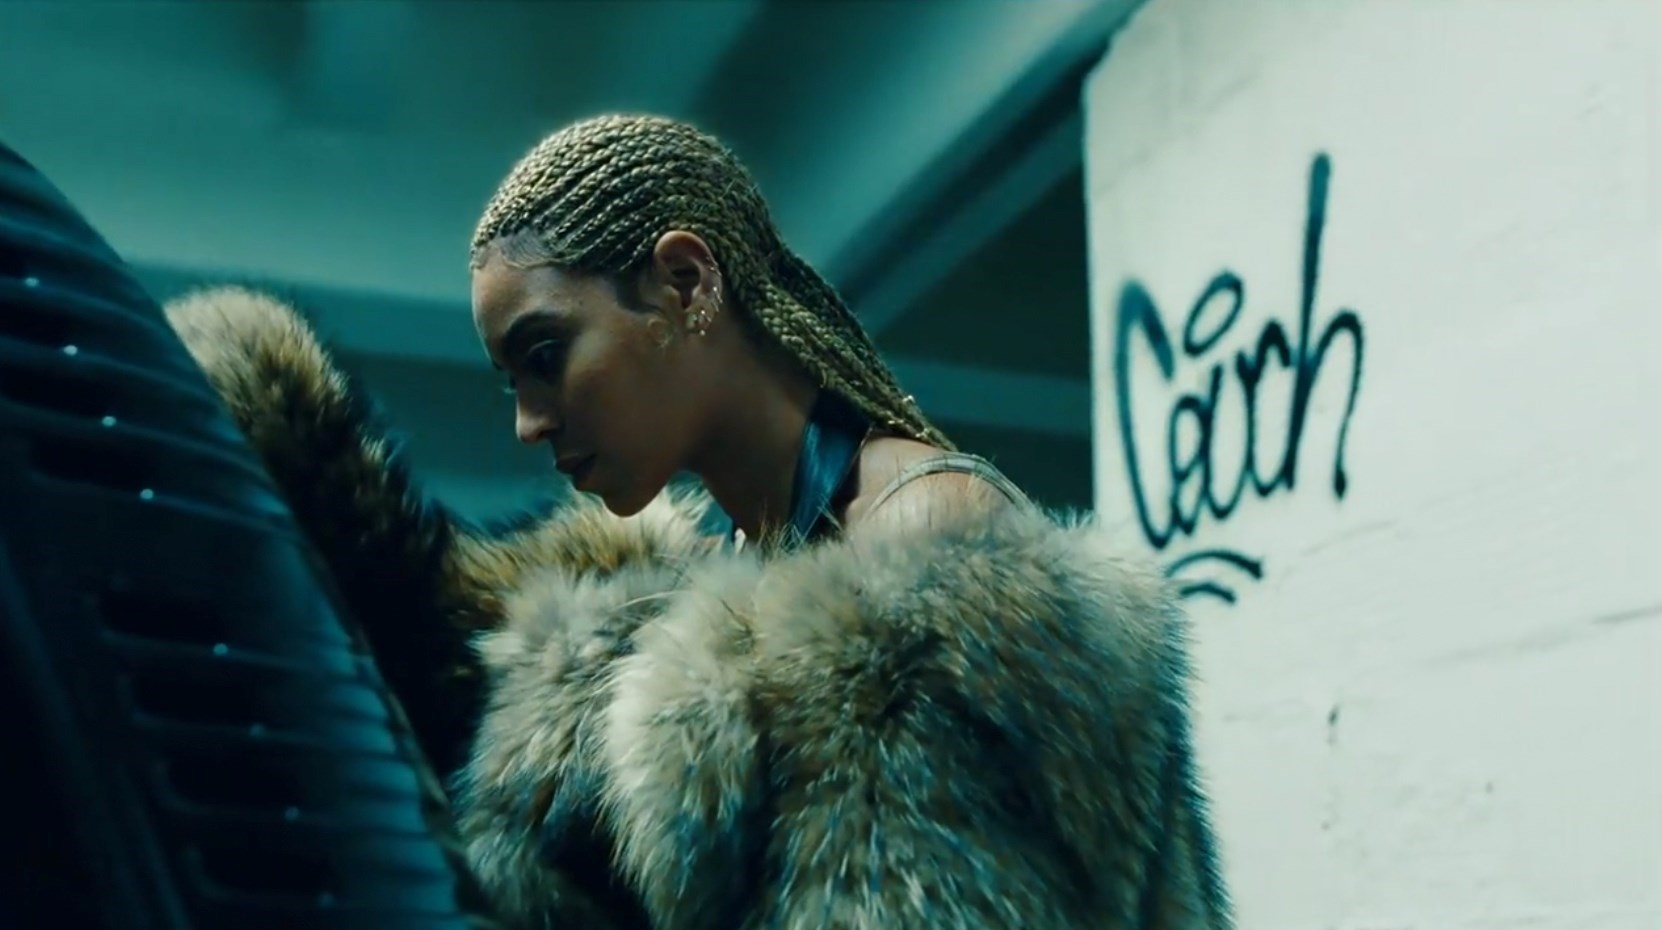 The important lessons Beyoncé is teaching young men